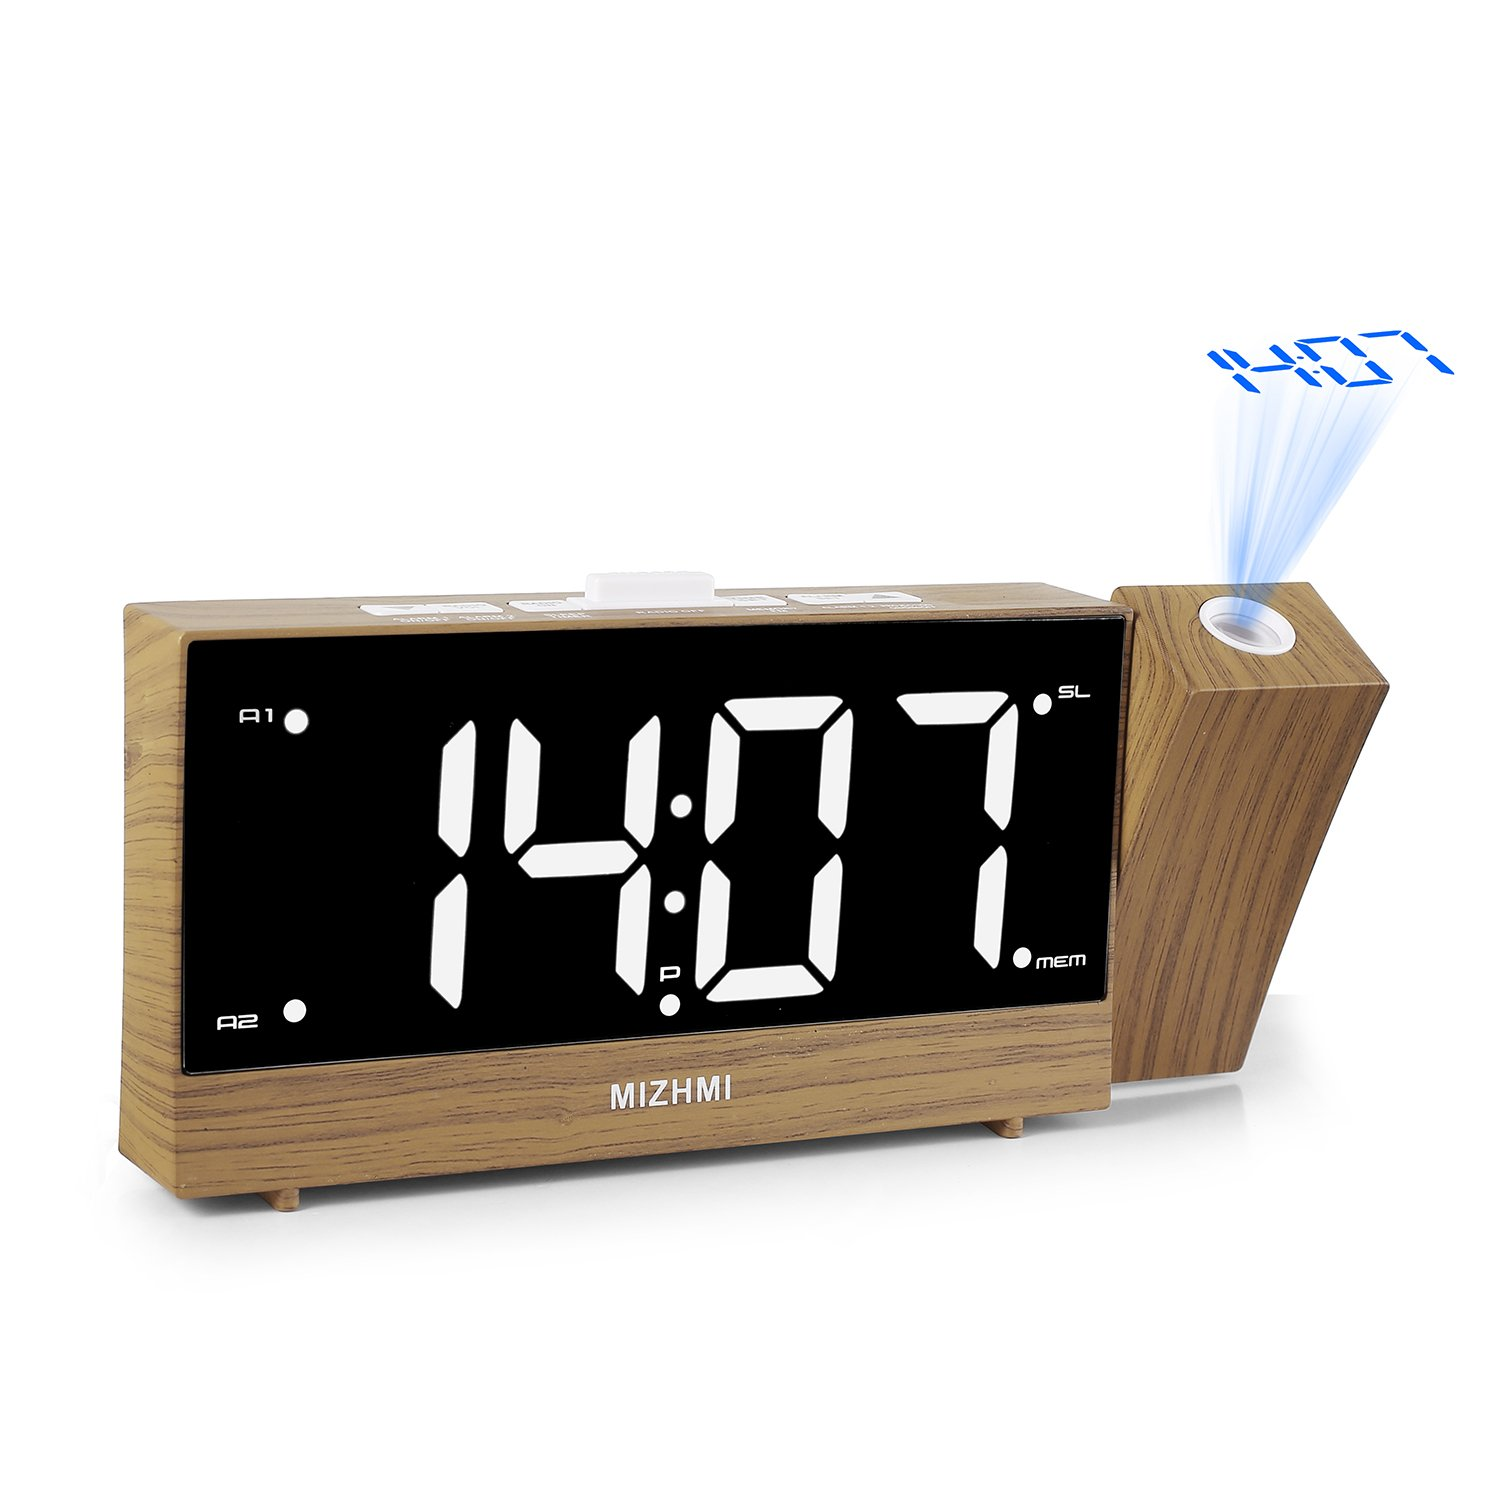 MIZHMI Projection Alarm Clock, Dual Alarms with FM Radio USB Charging Dimmer 5.5'' LED 12/24 Hour Display and Dimming Nap/Sleep Timer Snooze Function